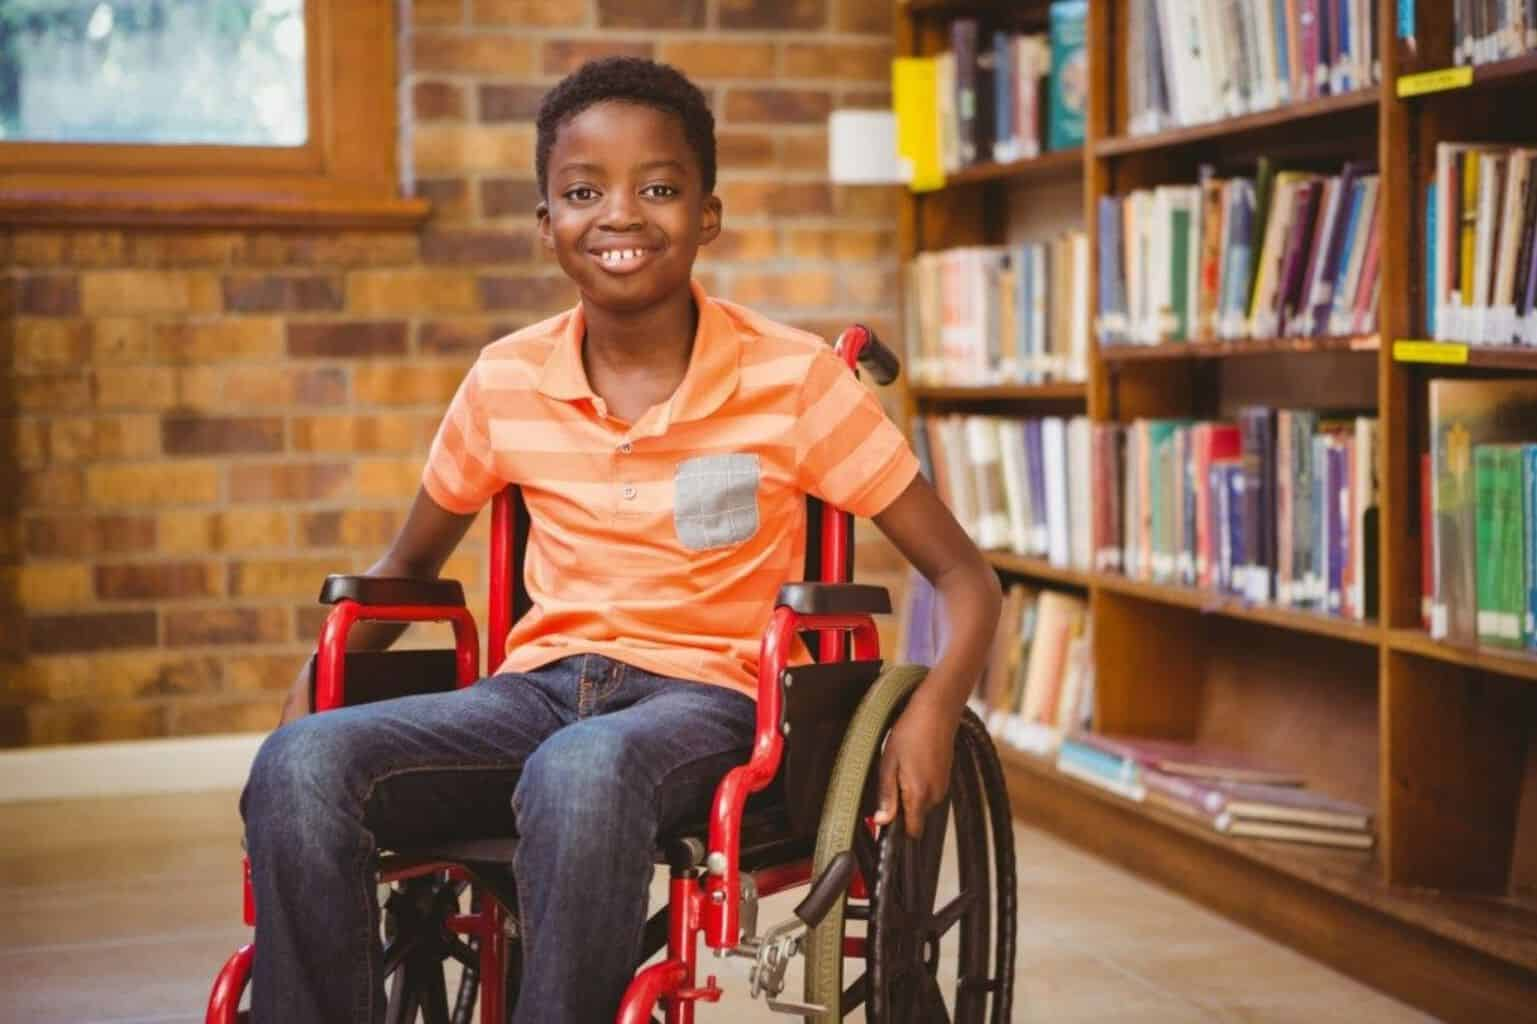 disabilities, international day of persons with disabilities